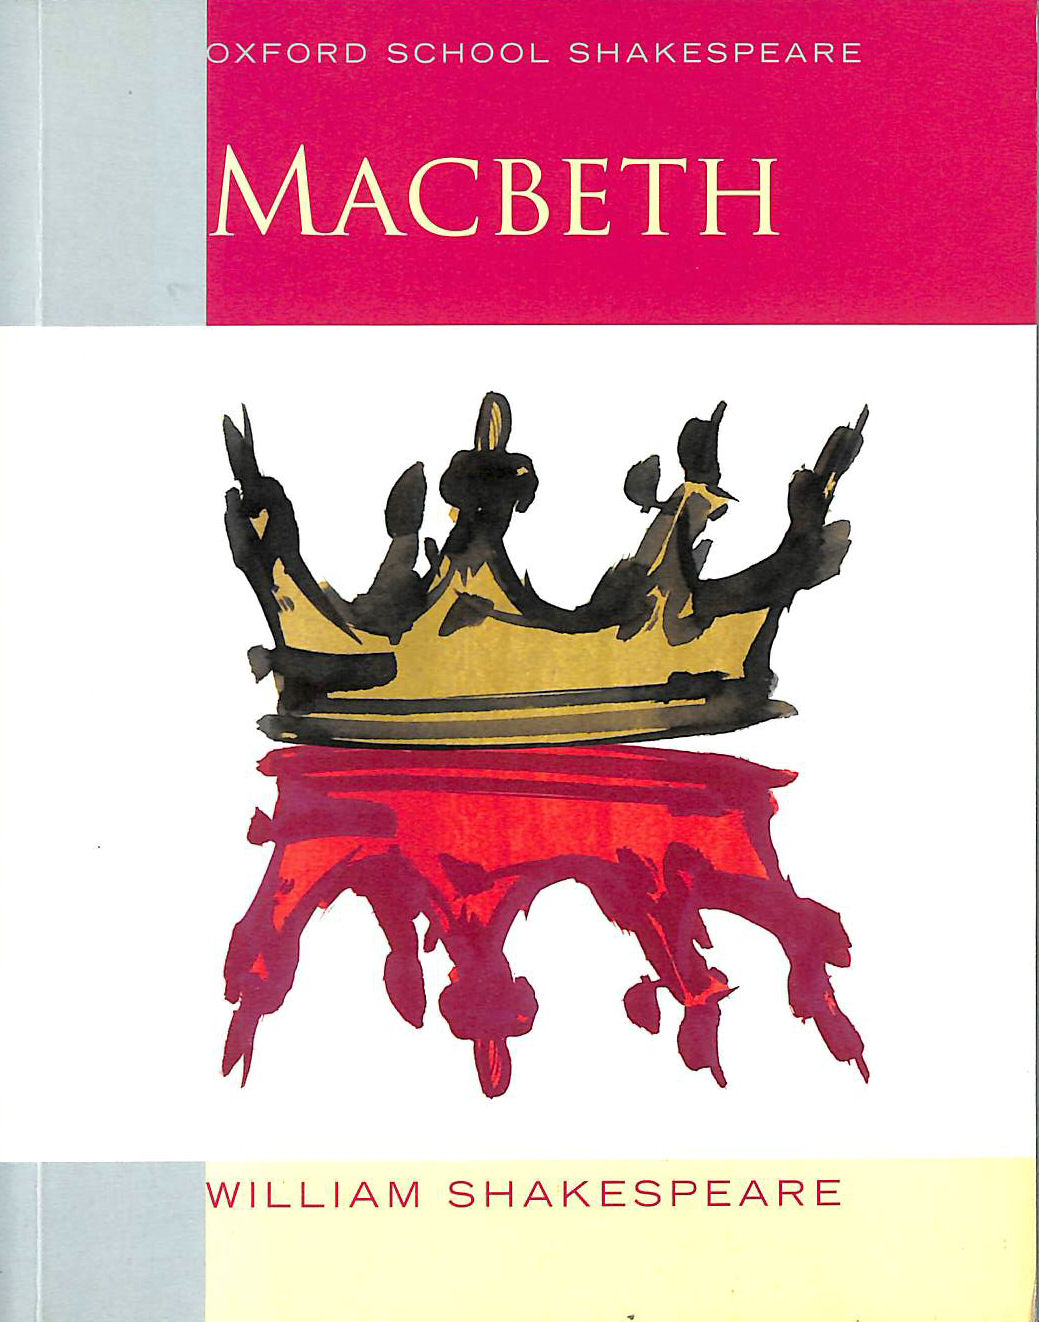 Image for Oxford School Shakespeare: Macbeth